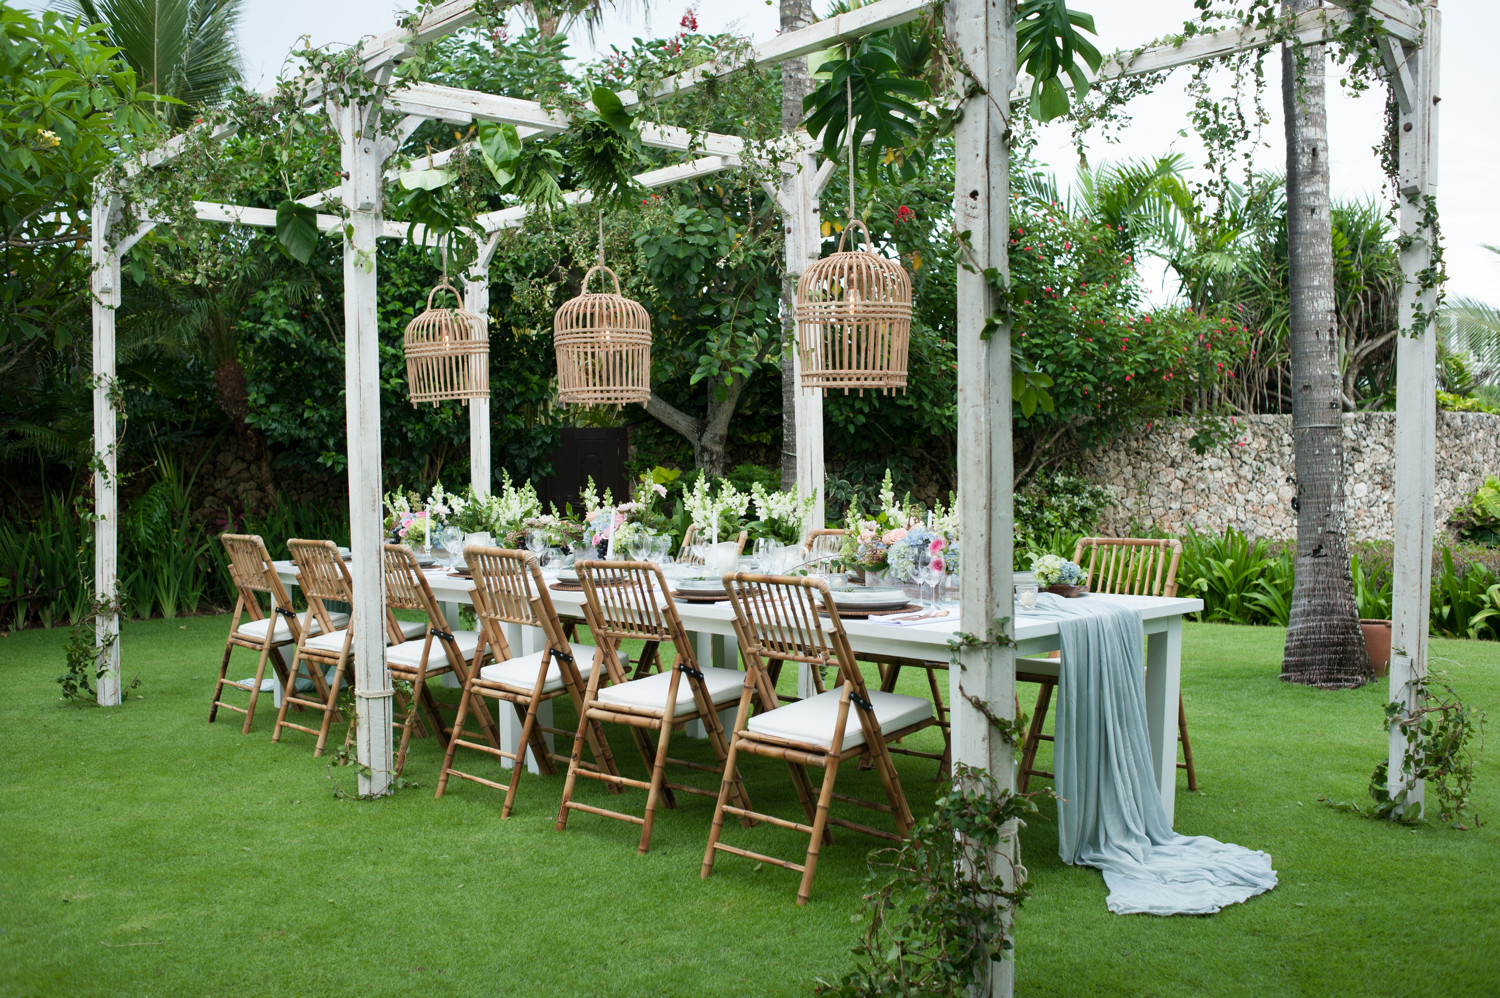 Bambooluxe new season inspo for your bali wedding bali event hire janice from bloomz bali weddings created floral magic by transforming two different wedding reception set ups into mini fairytales junglespirit Choice Image